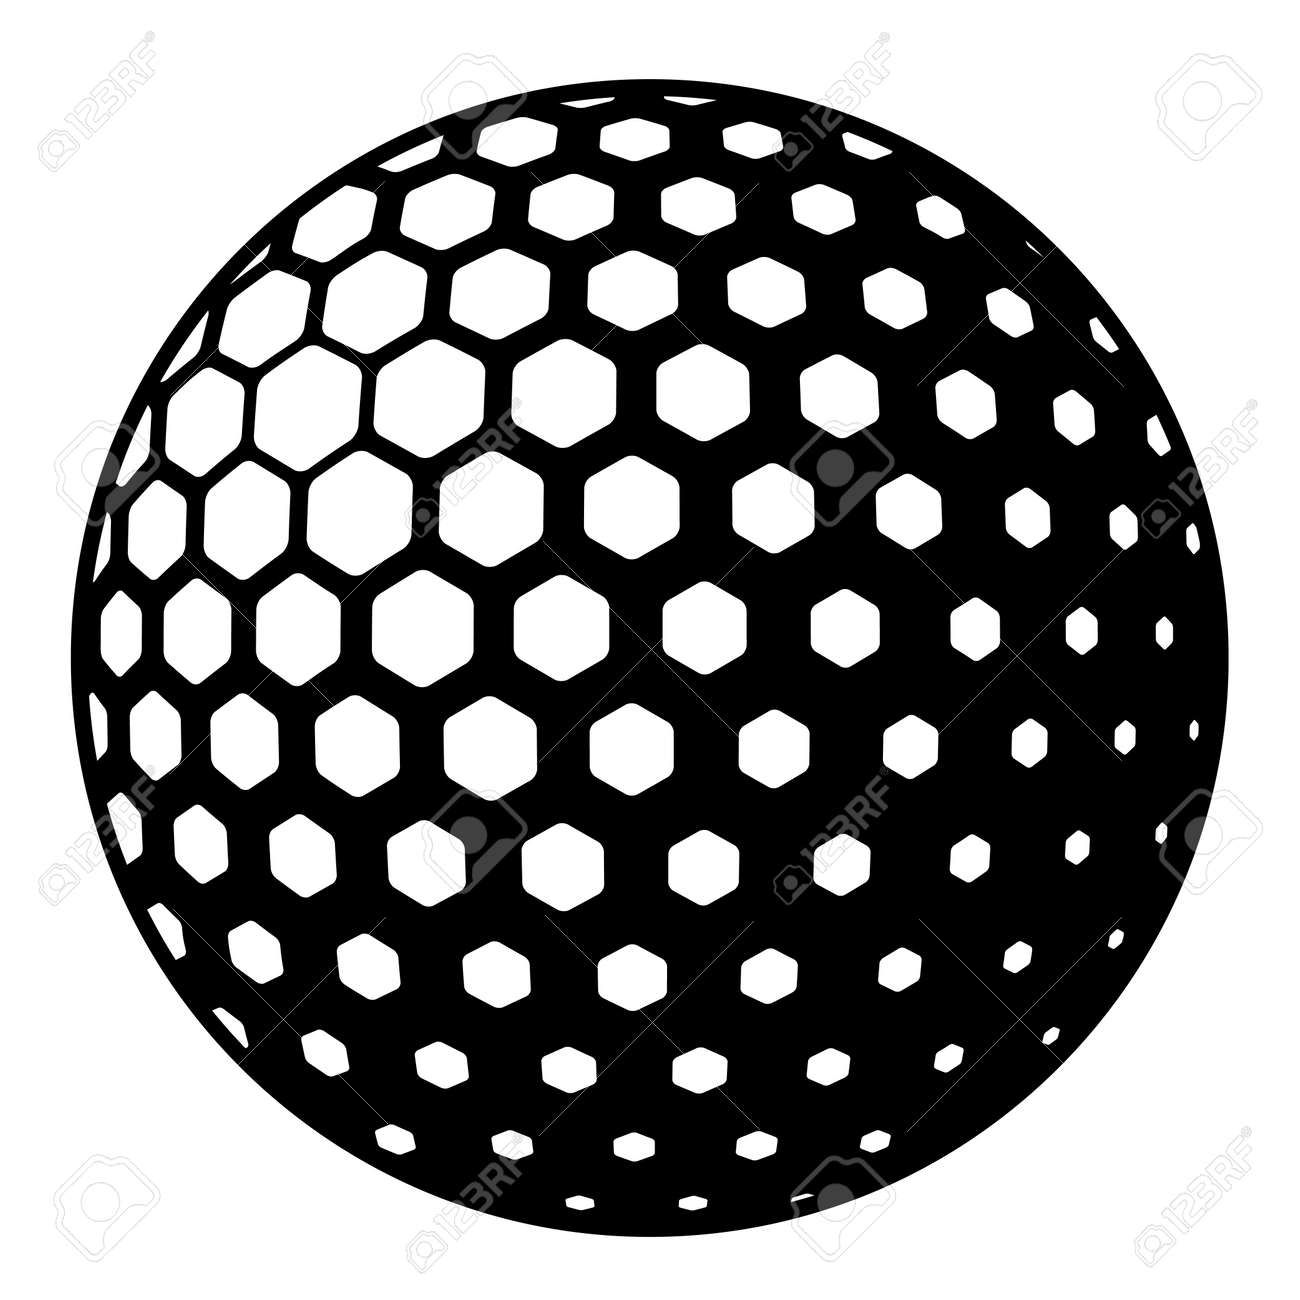 golf ball symbol royalty free cliparts vectors and stock rh 123rf com vector golf ball outline vector golf ball tutorial illustrator